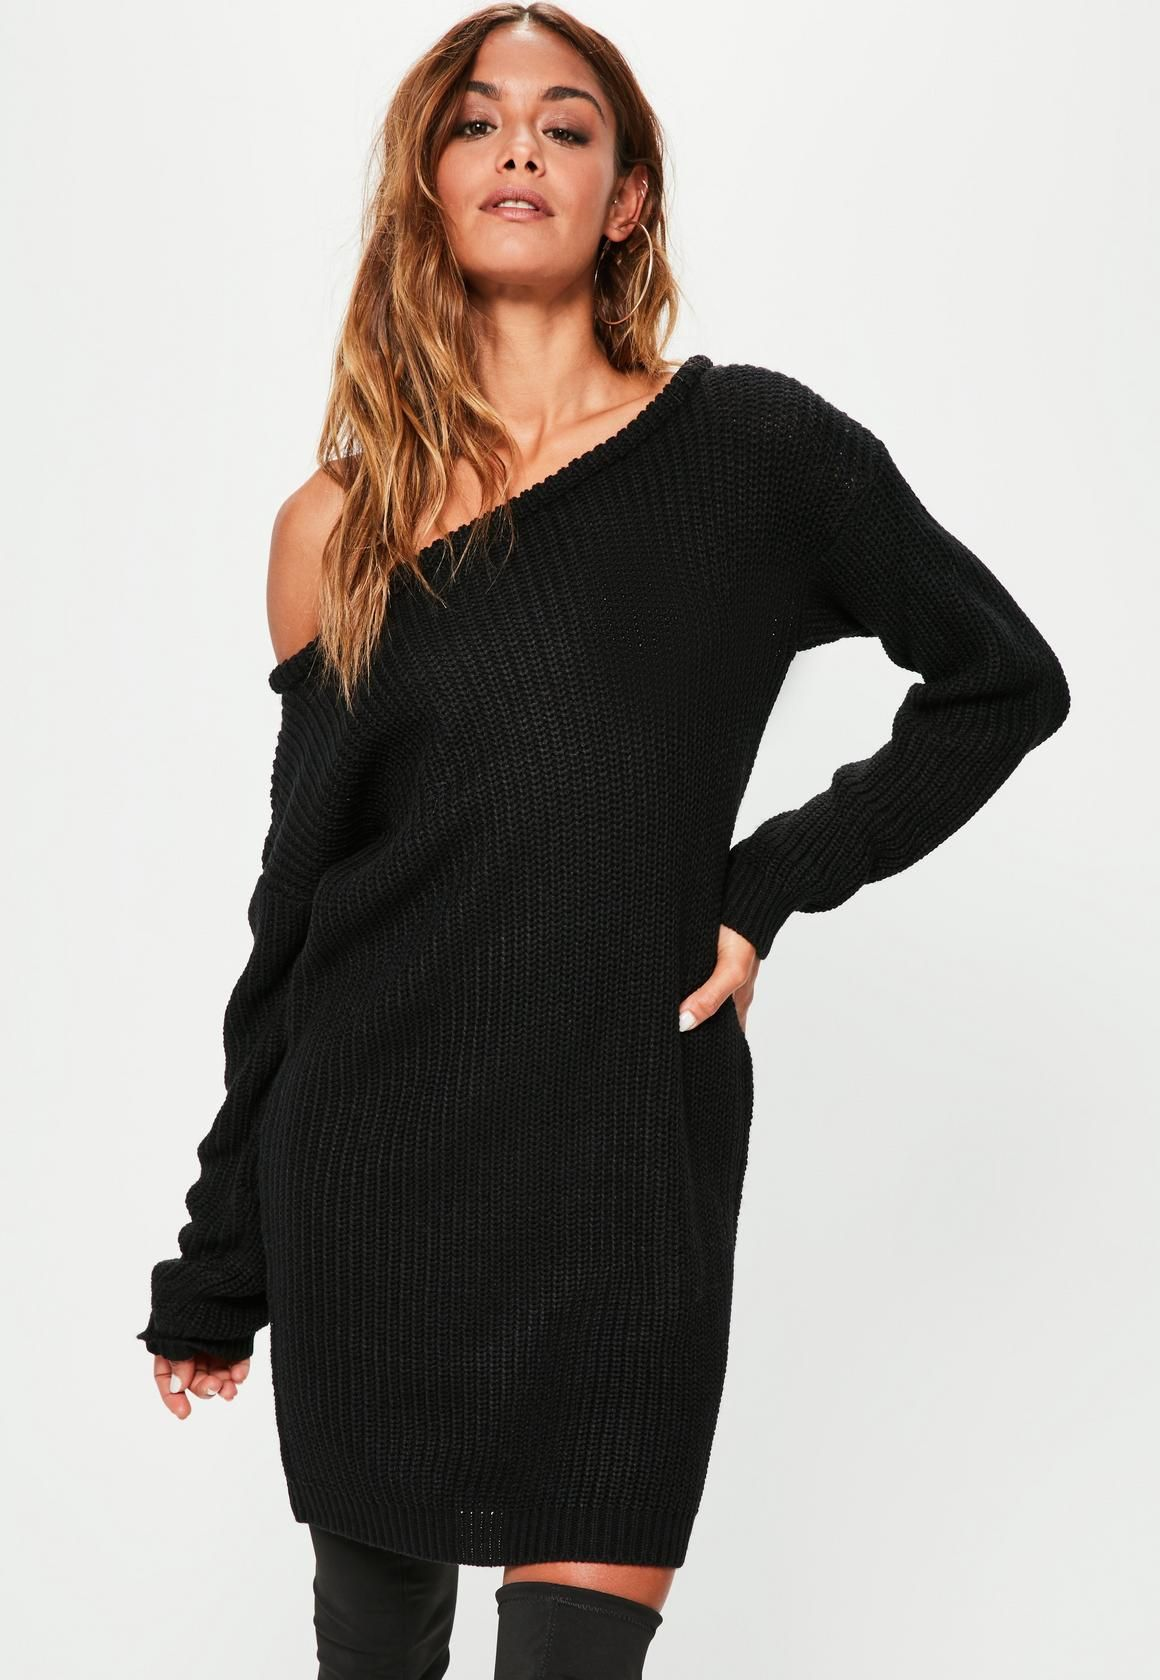 97c6729da54 Missguided - Black Off Shoulder Knitted Sweater Dress | wishlist ...